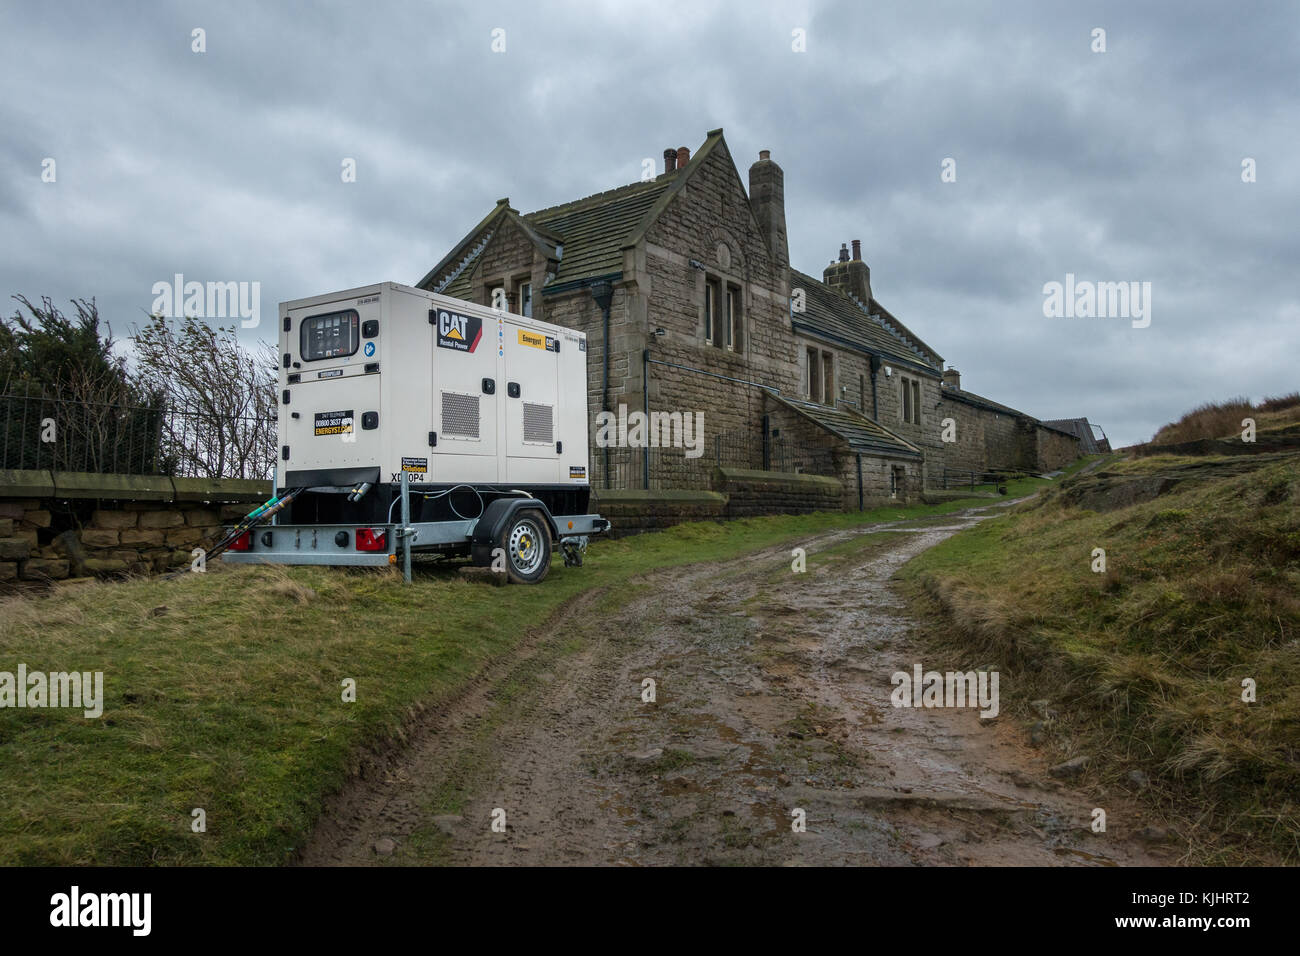 Cat Mobile Diesel Generator Set plugged in and running outside a rural countryside property having building work - Stock Image